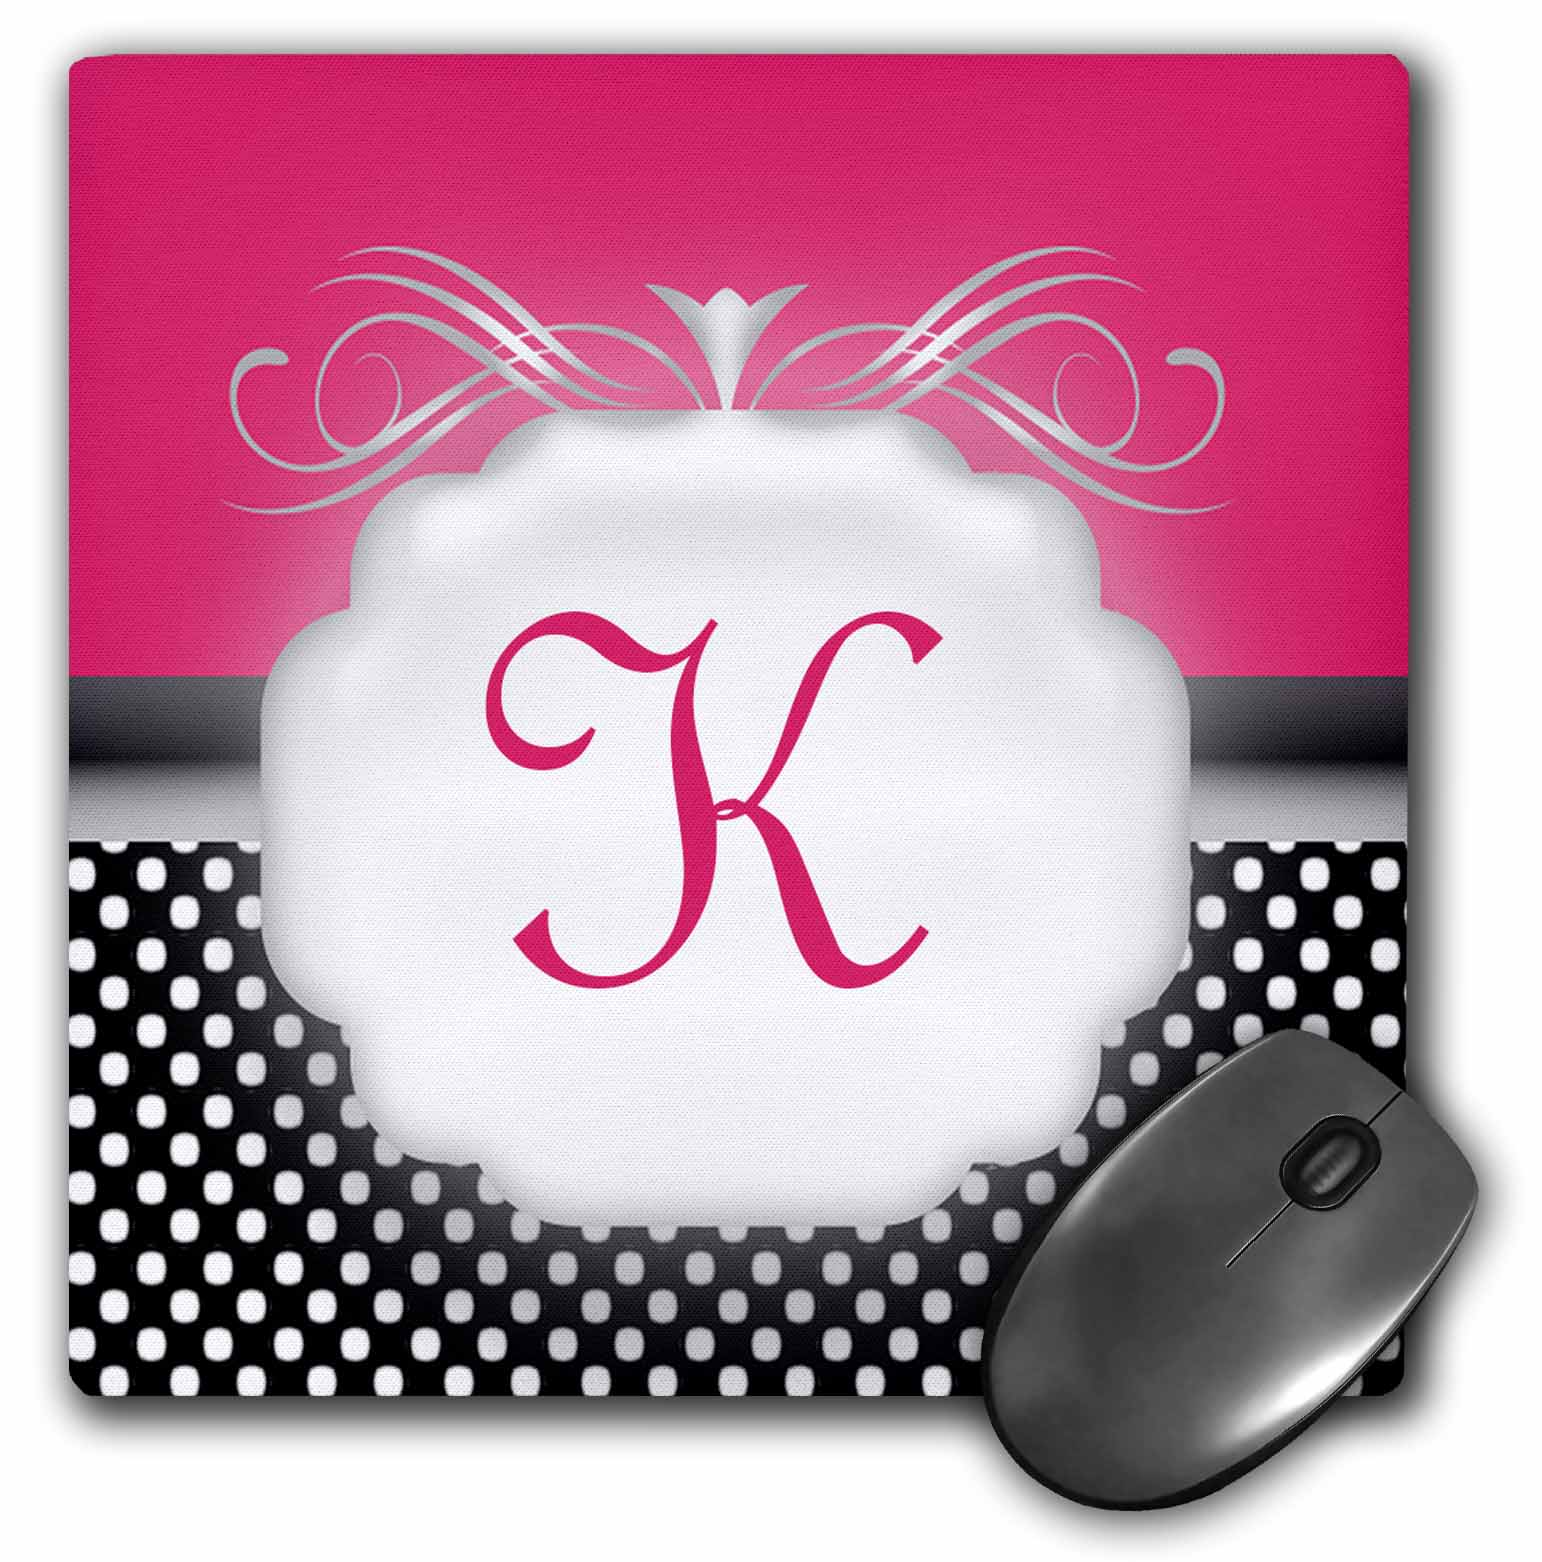 3dRose Elegant Pink with Black and White Polka Dot Monogram Letter K, Mouse Pad, 8 by 8 inches